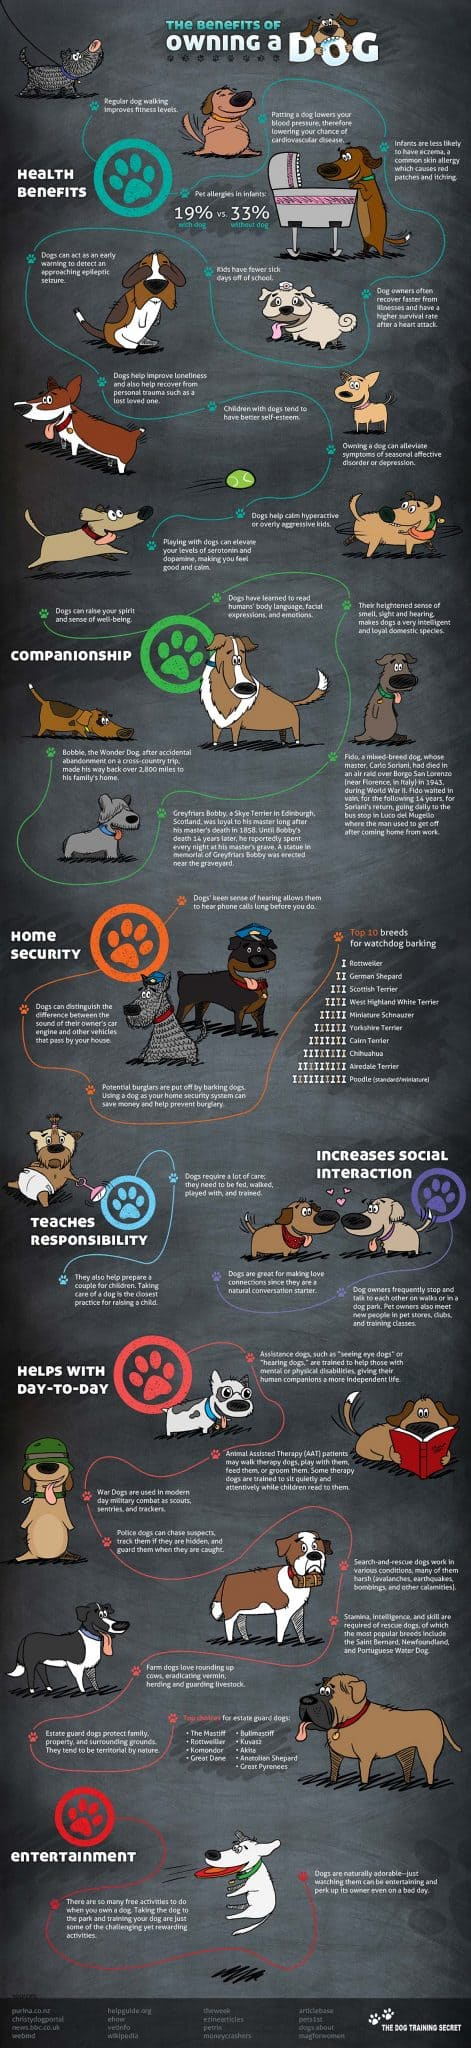 Benefits Of Owning A Dog: Infographic